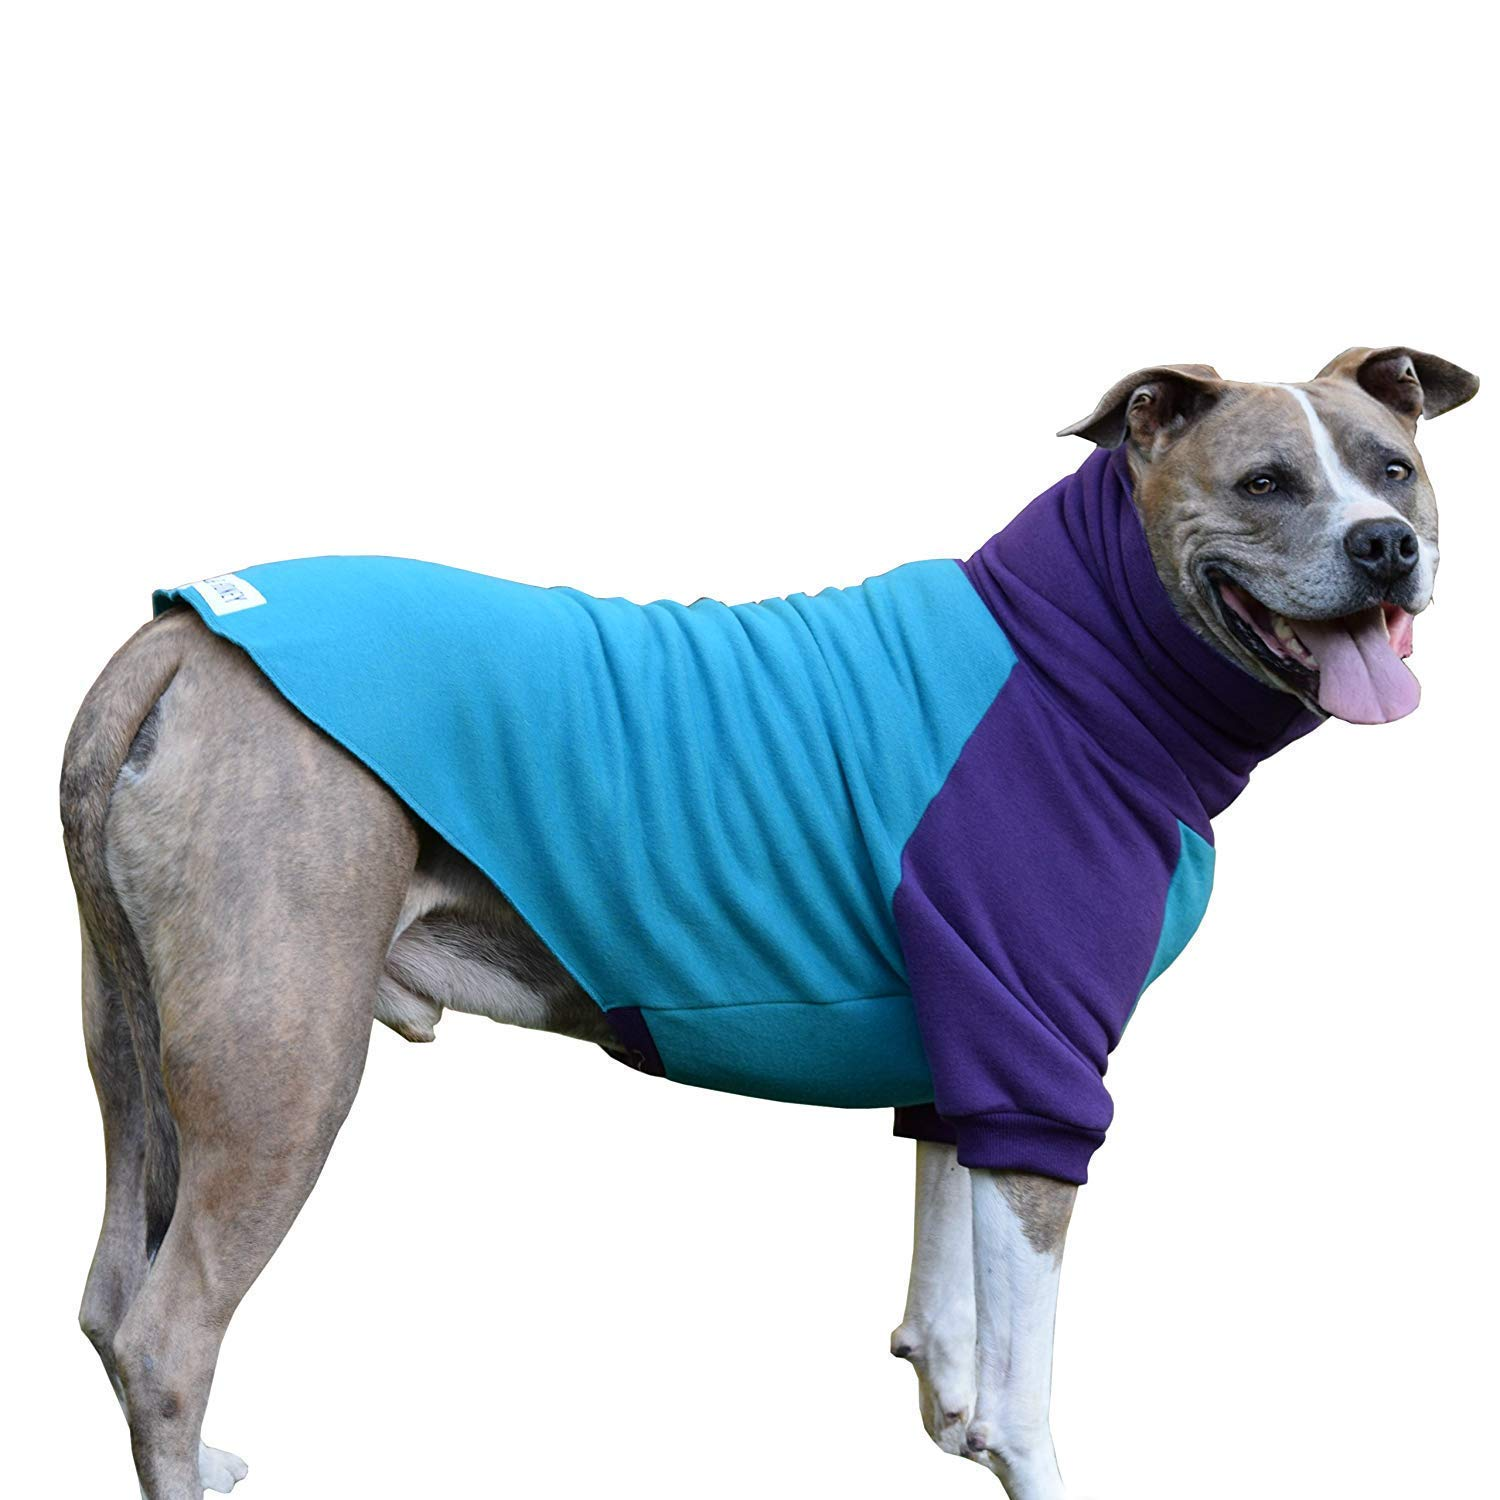 Tooth & Honey Big Dog Sweater/Pitbull/Bully Breed/Colorblock Sweatshirt/Pullover (Extra Large)